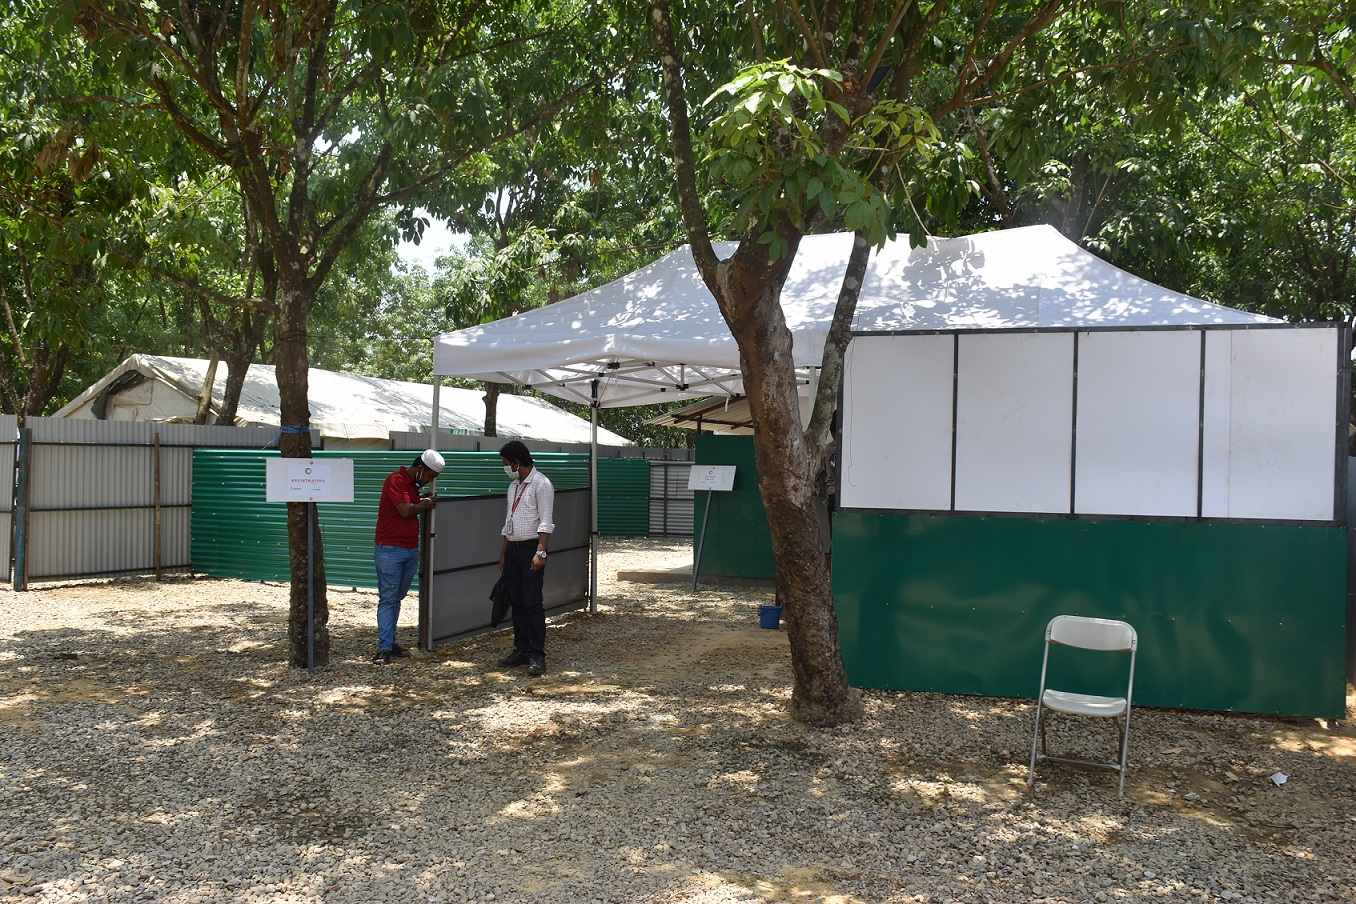 QRCS opens coronavirus isolation facility at Bangladesh refugee camps